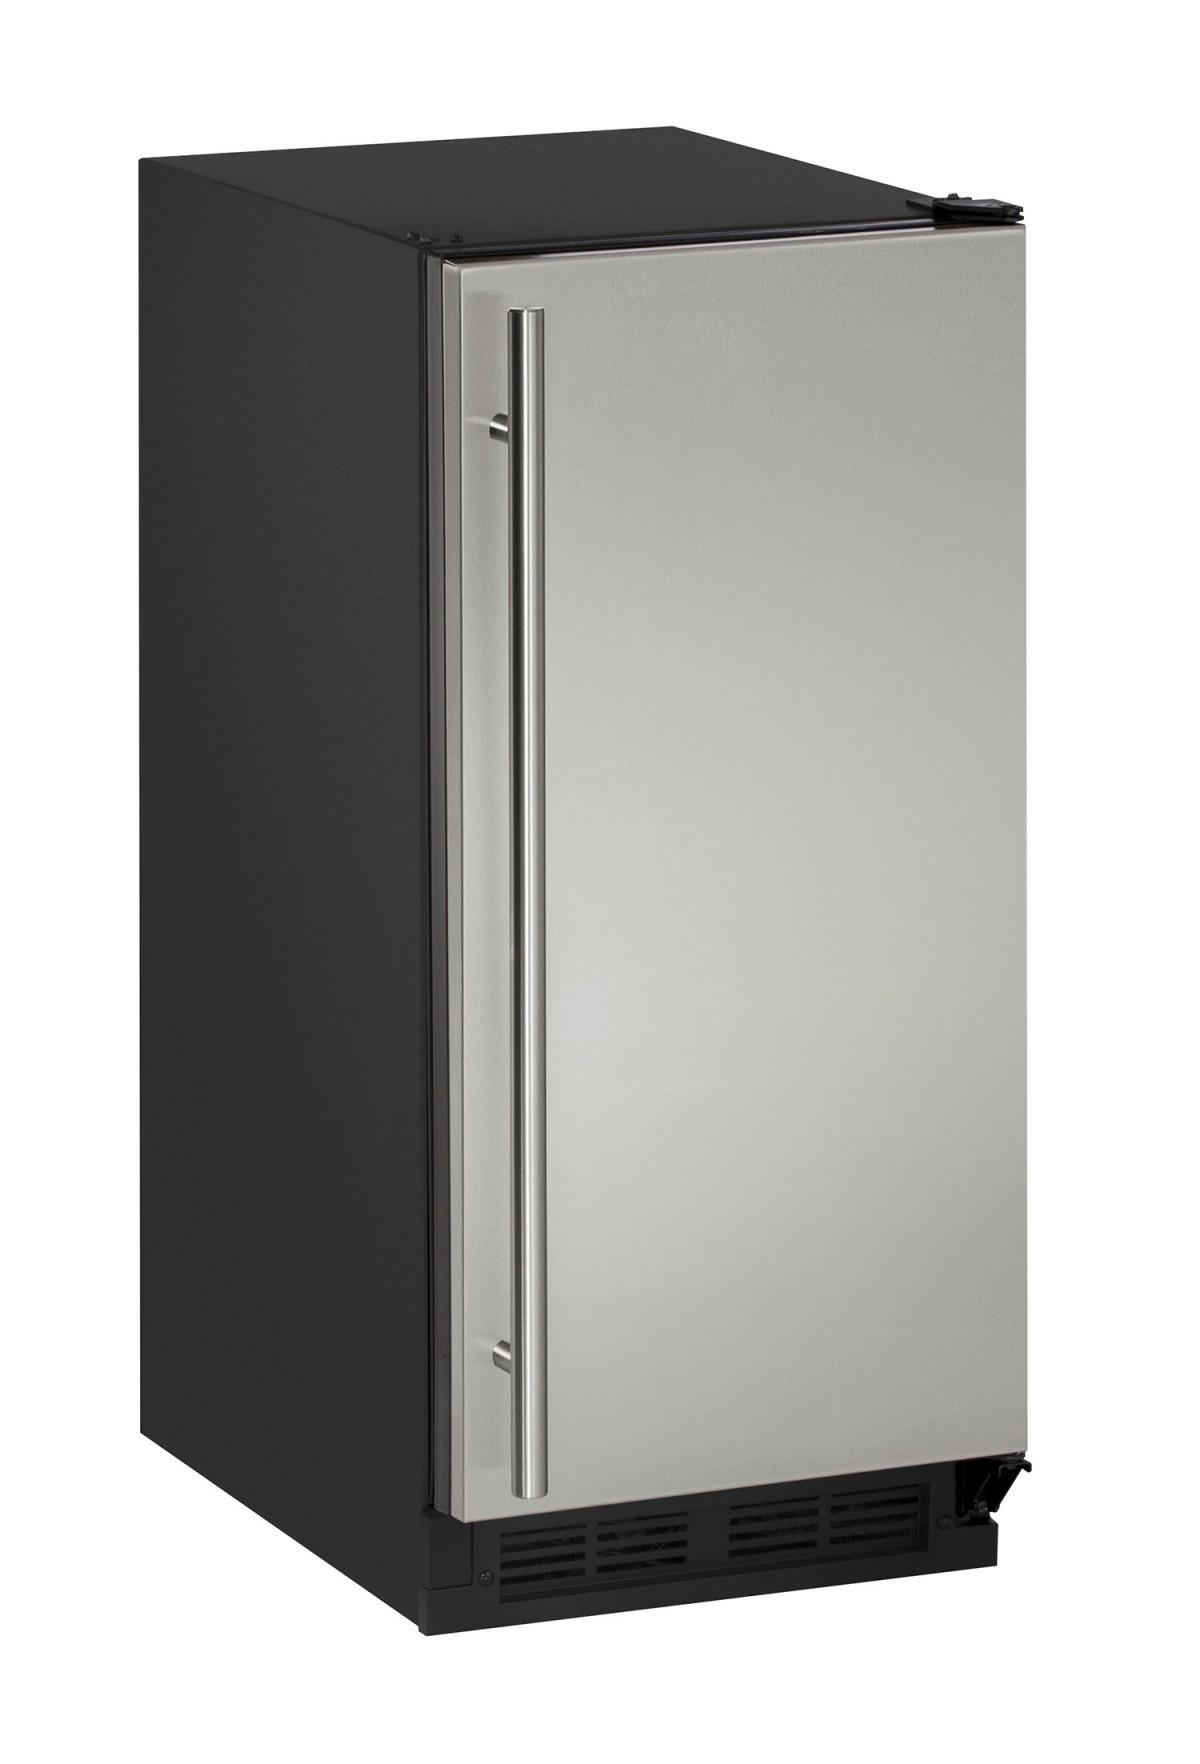 "U-Line Ice Maker 15"" Undercounter Clear Ice Maker - Item Number: U-CLR1215S-00A"